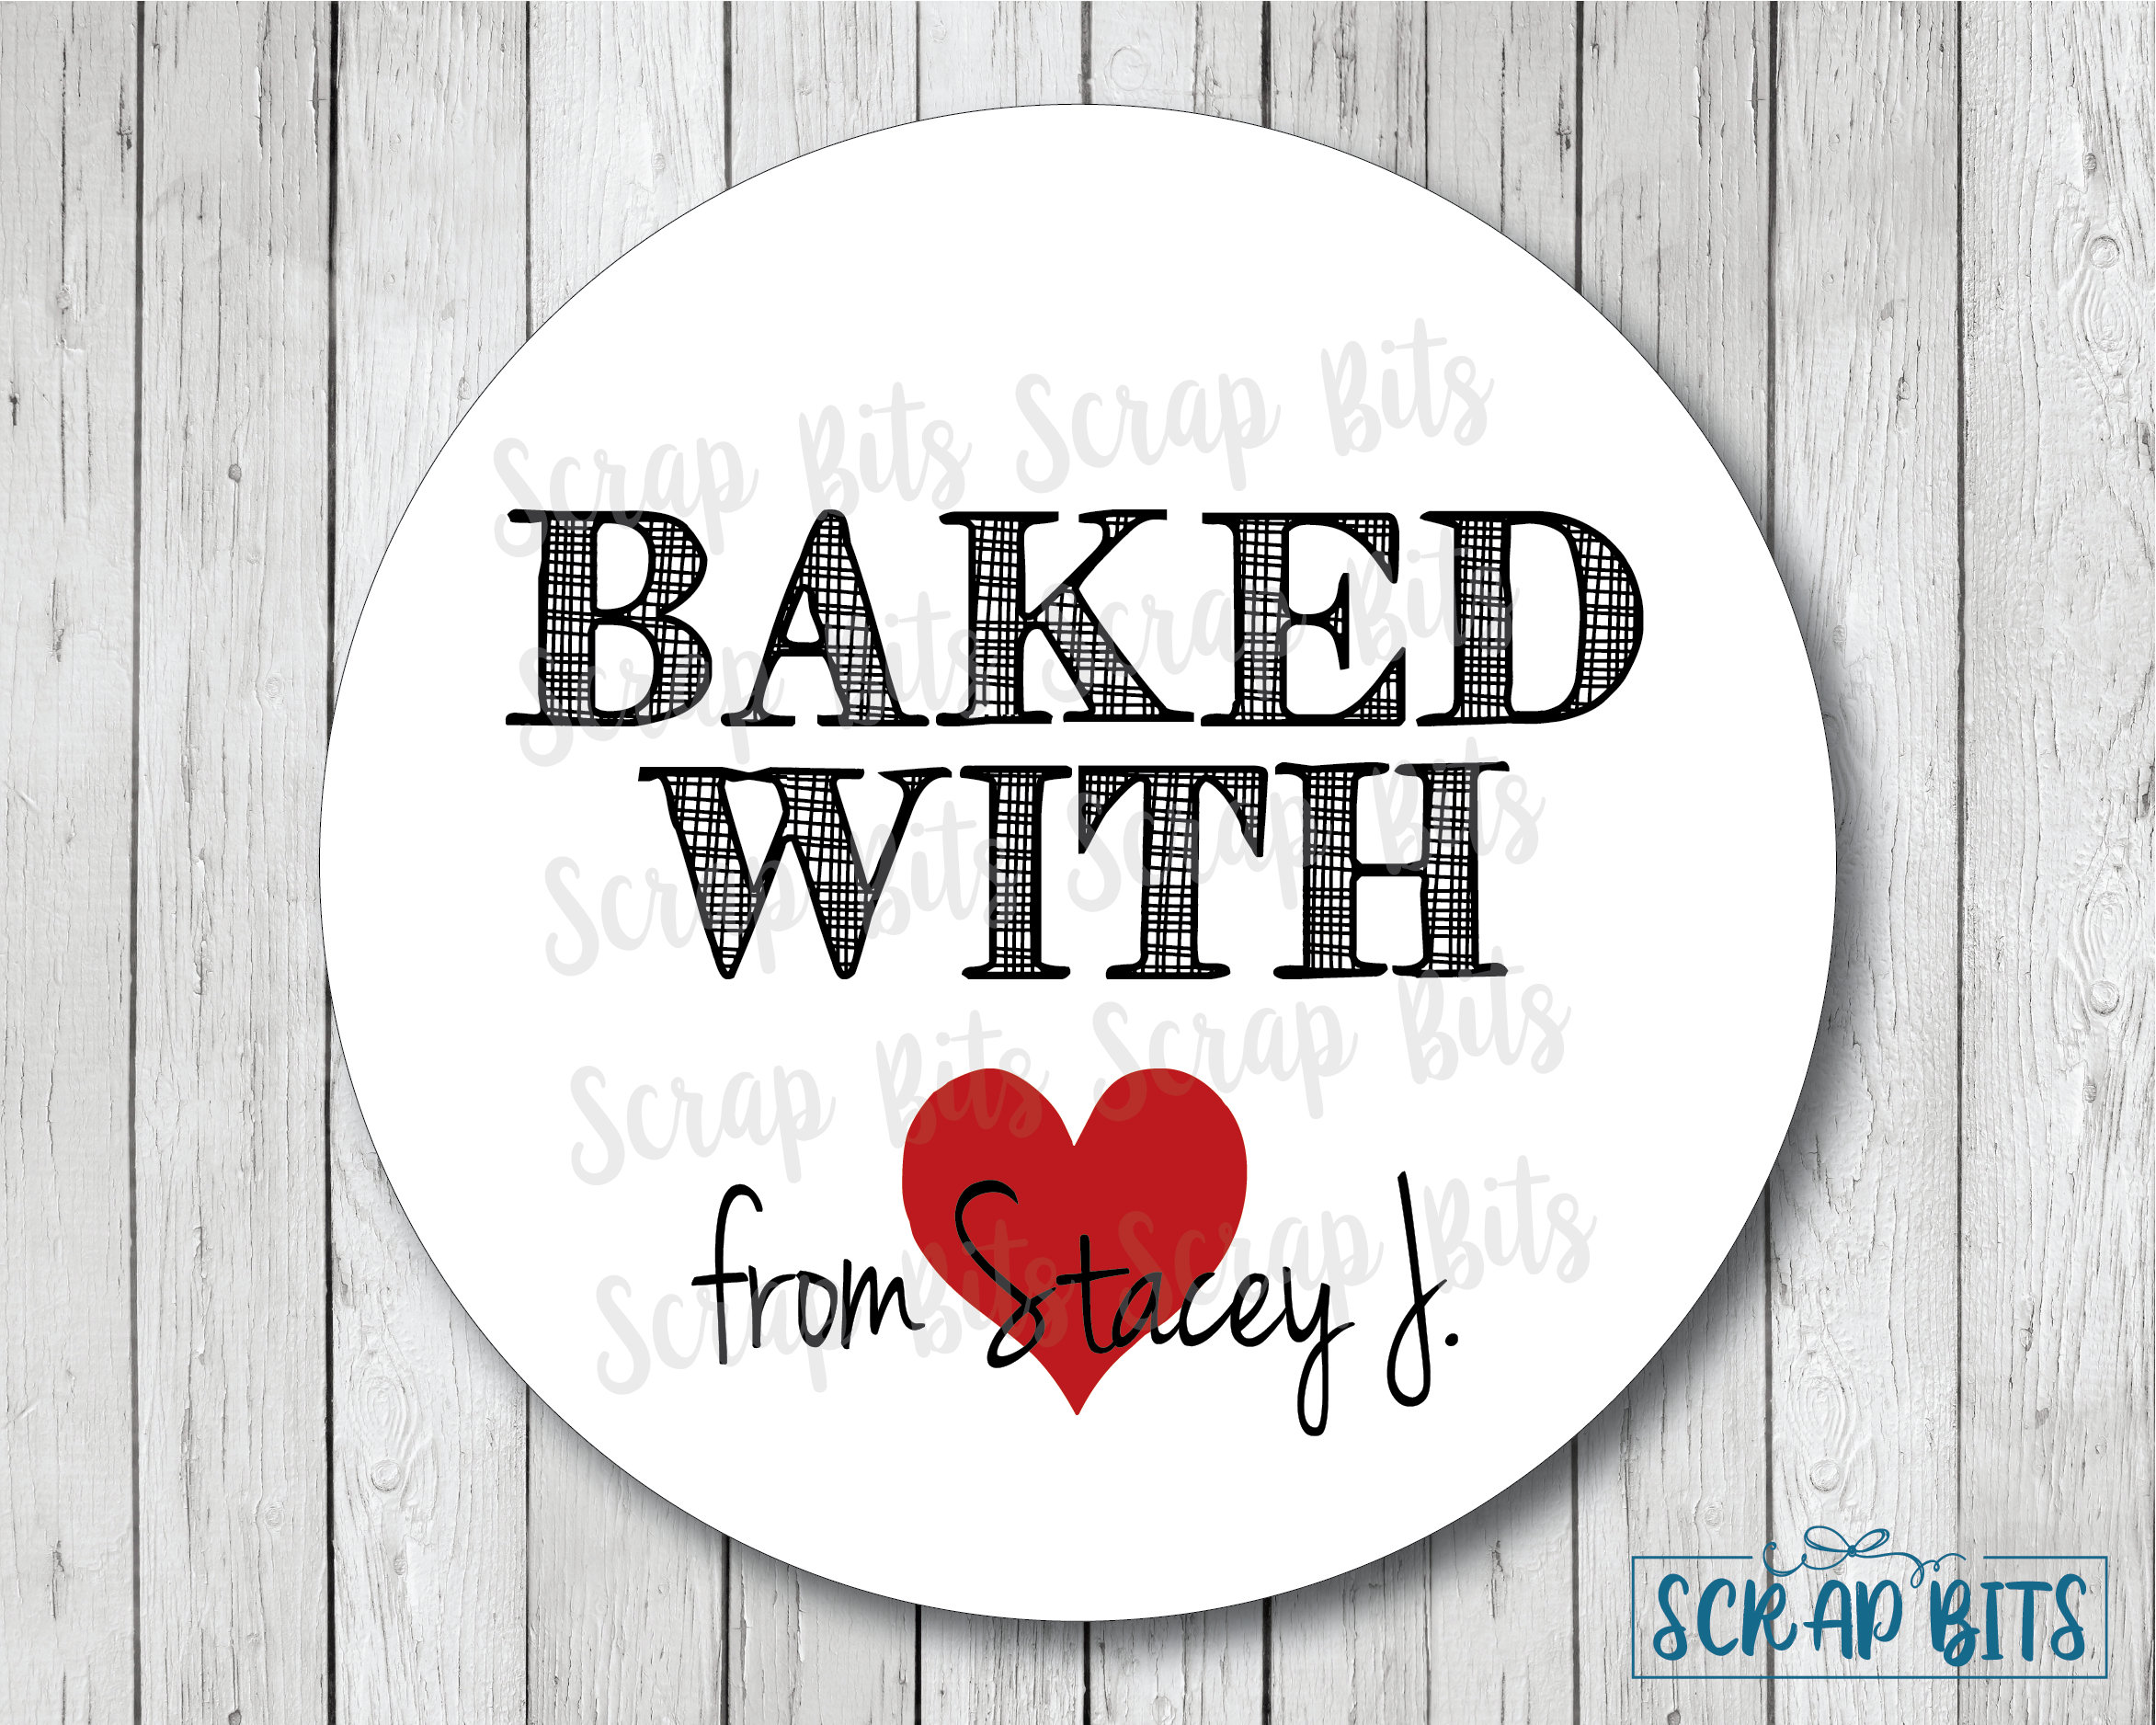 Baked with love stickers baked with heart personalized baked goods label baking labels or tags